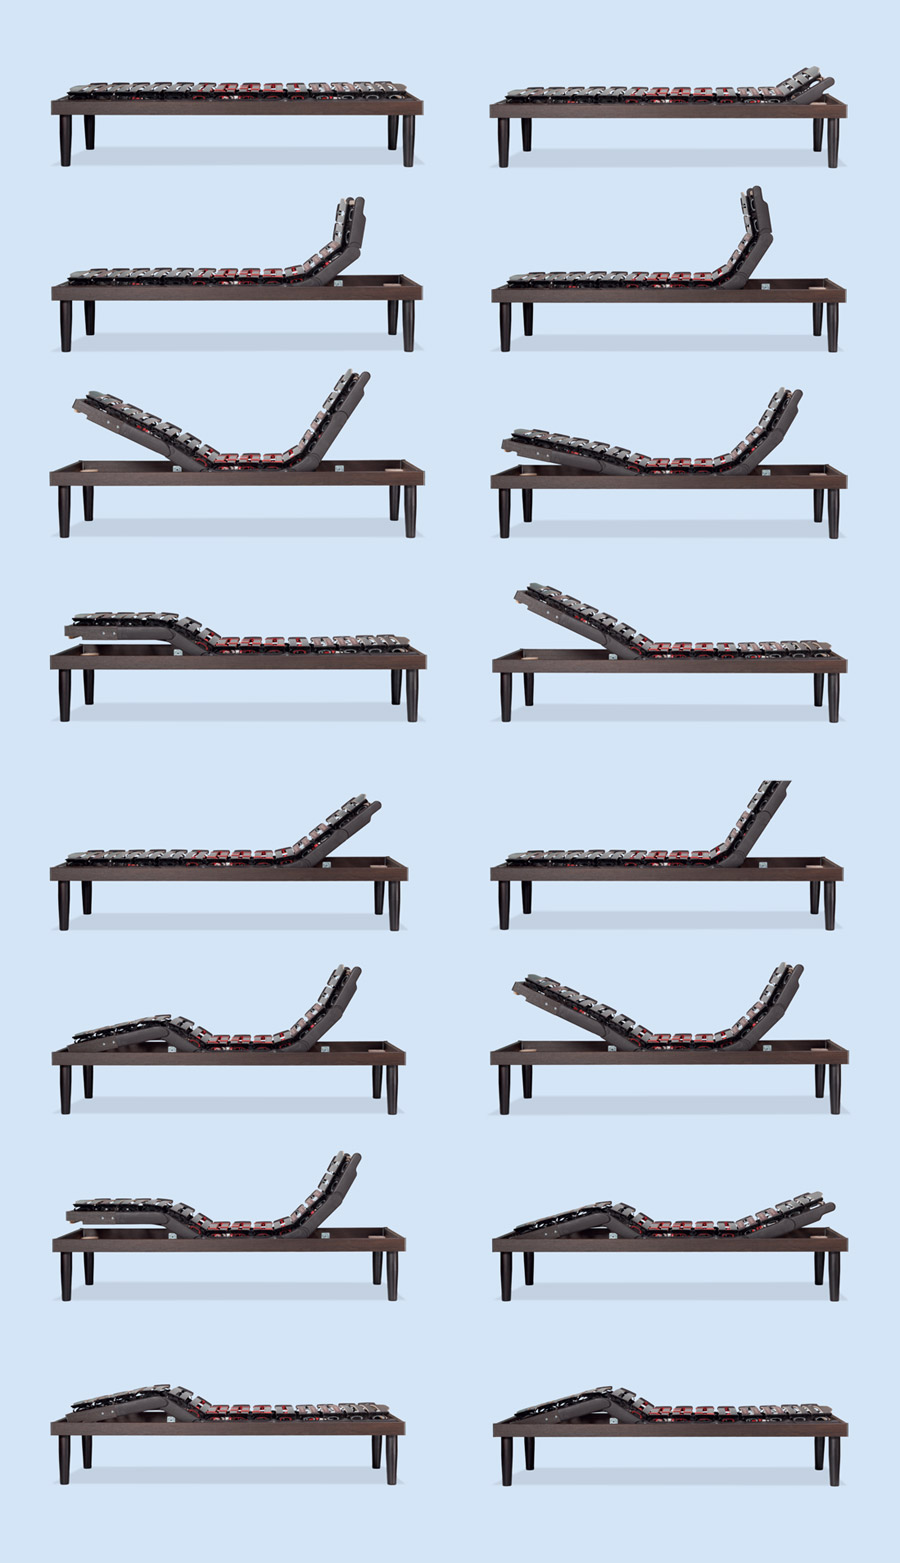 Possible positions taken by the bed base Ergomovie De Luxe